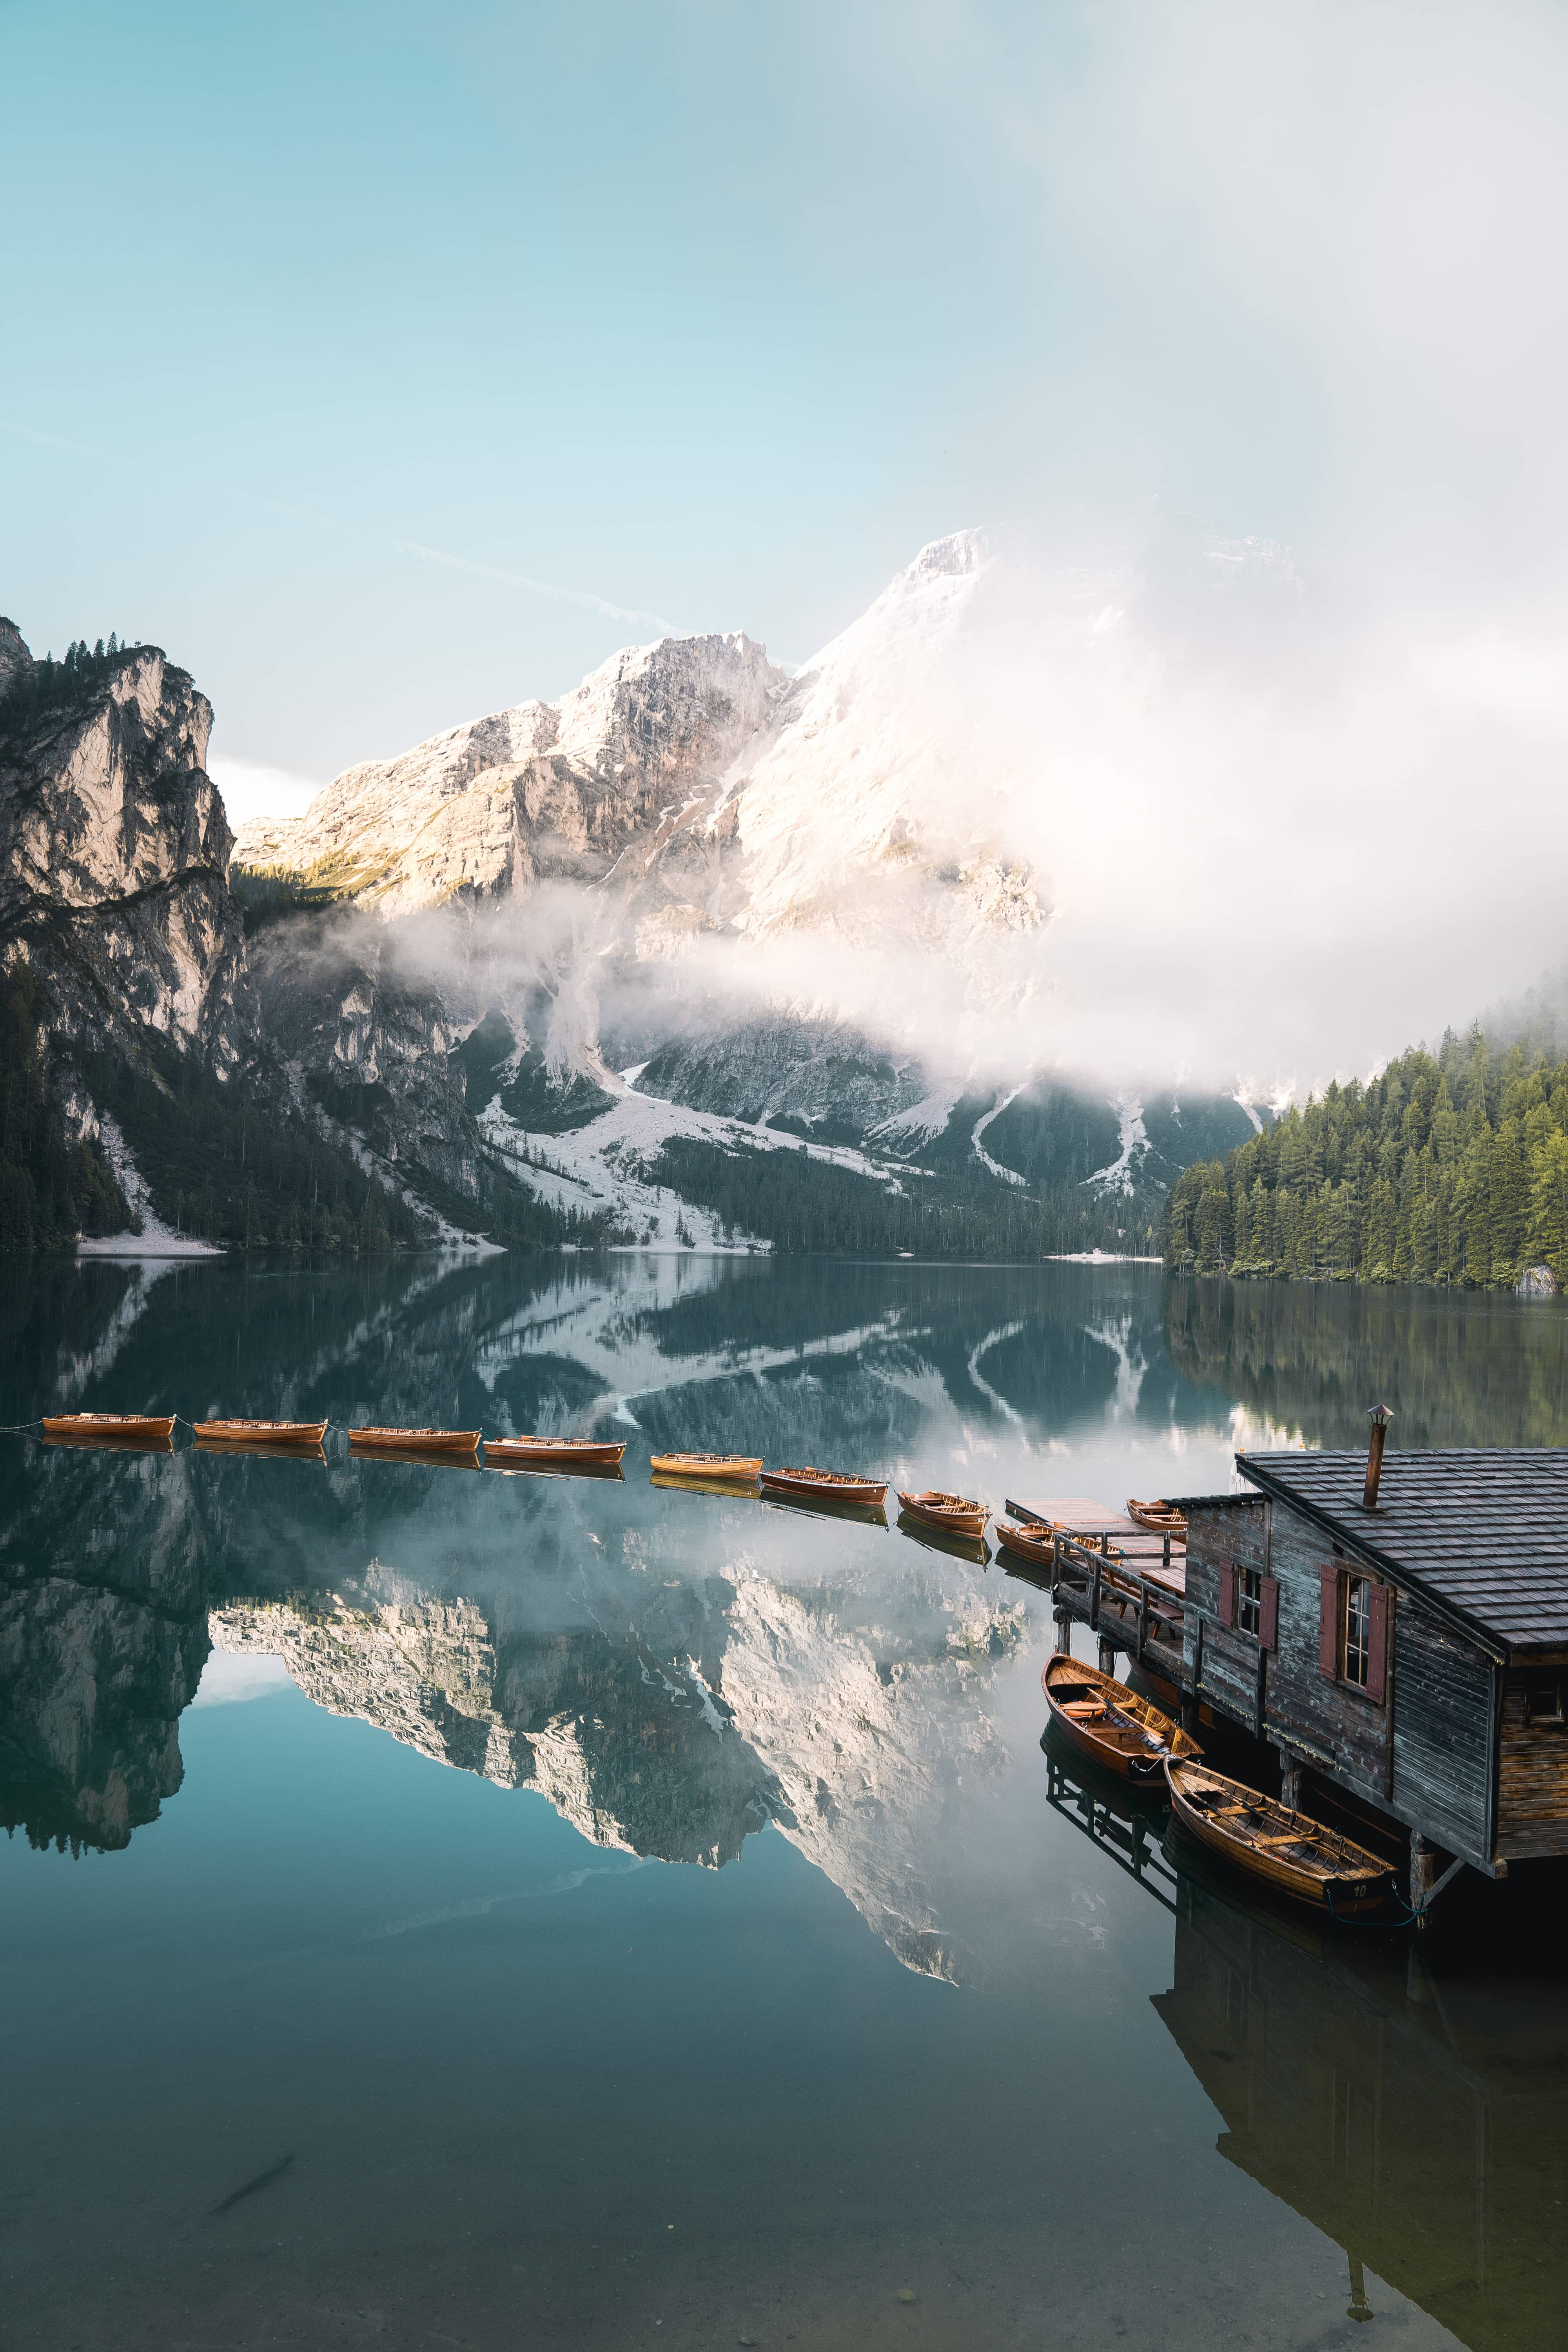 Lago di Braies, Pragser Wildsee in Italy while sunrise. Mountains shined on by sunrise reflecting in blue lake with boat house